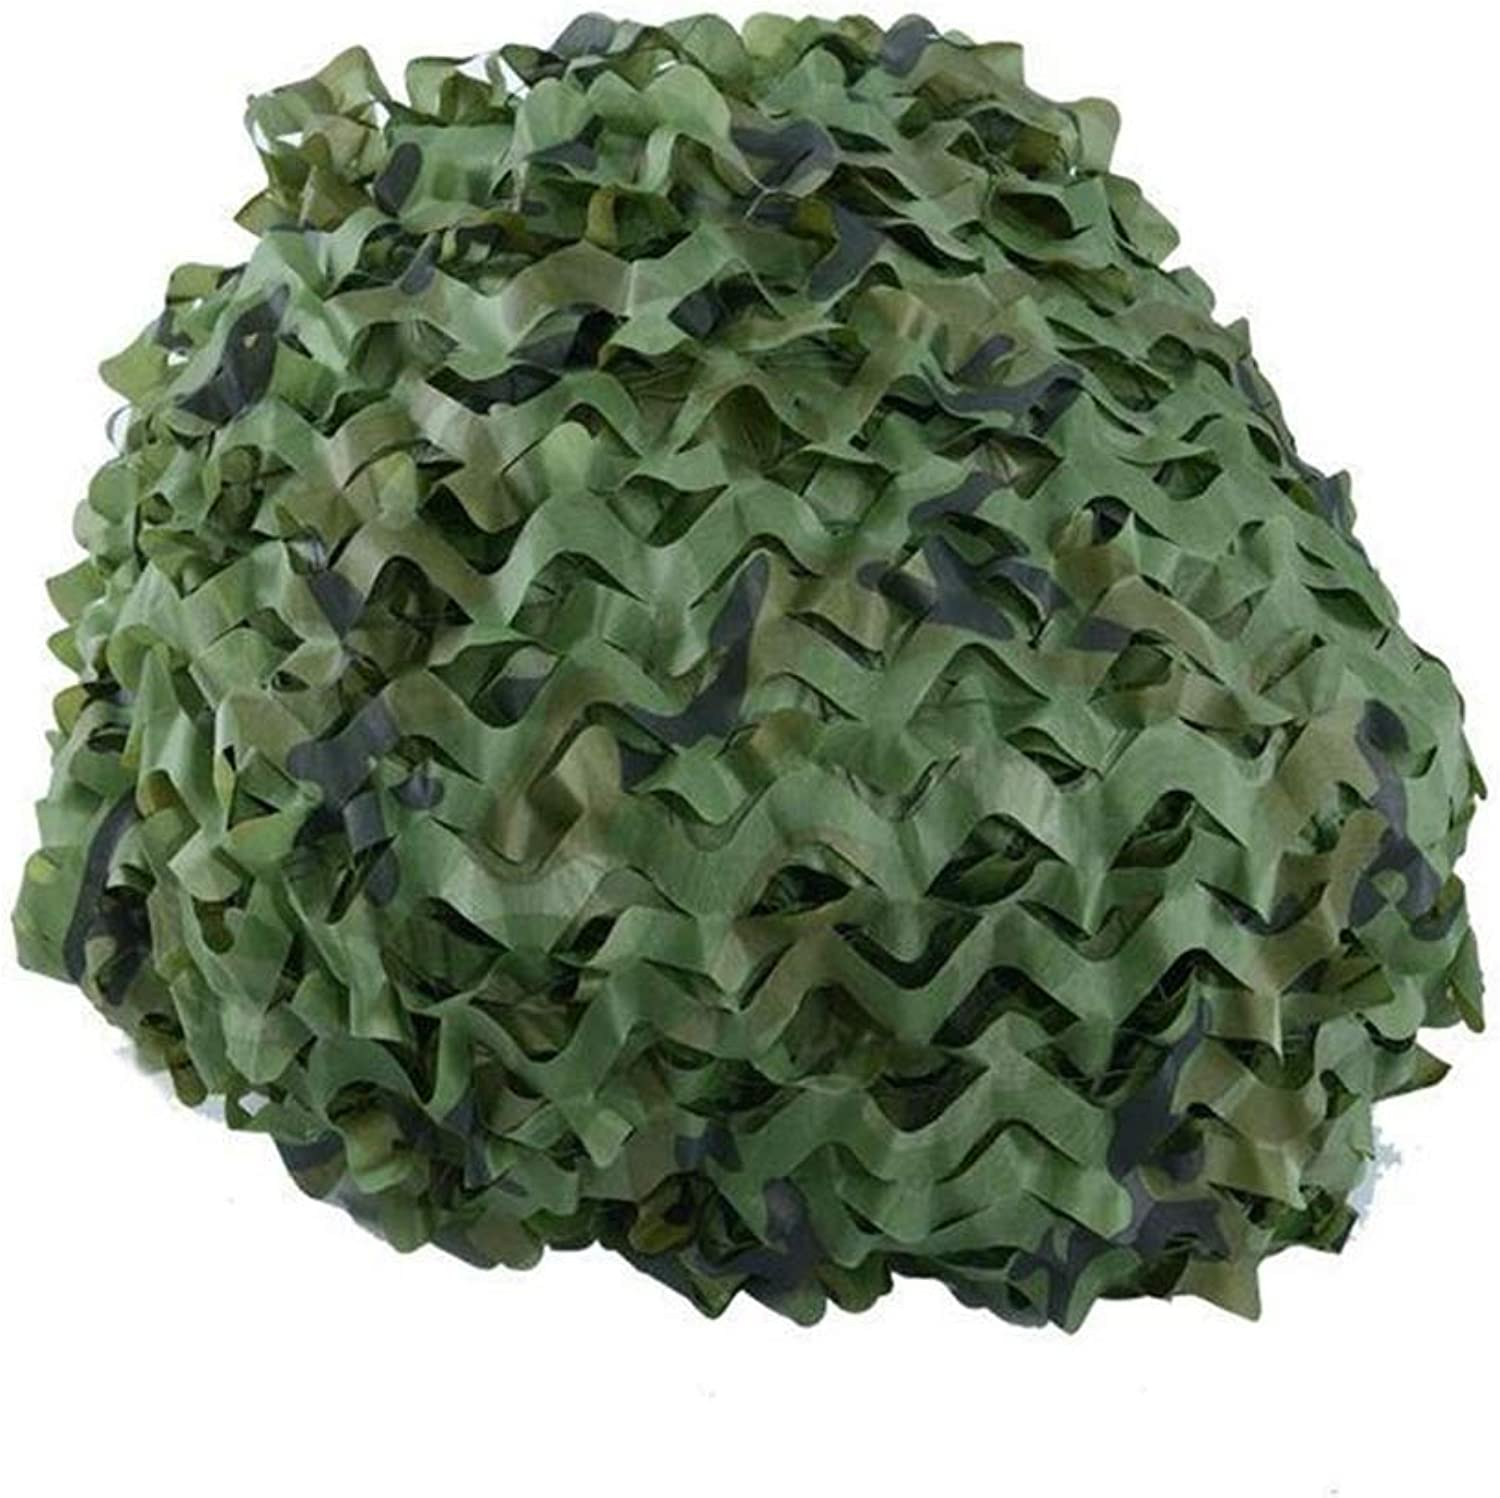 Camouflage Net Shading Net Outdoor Jungle Green Roof Cover Building Sunscreen Net AntiAircraft Camping